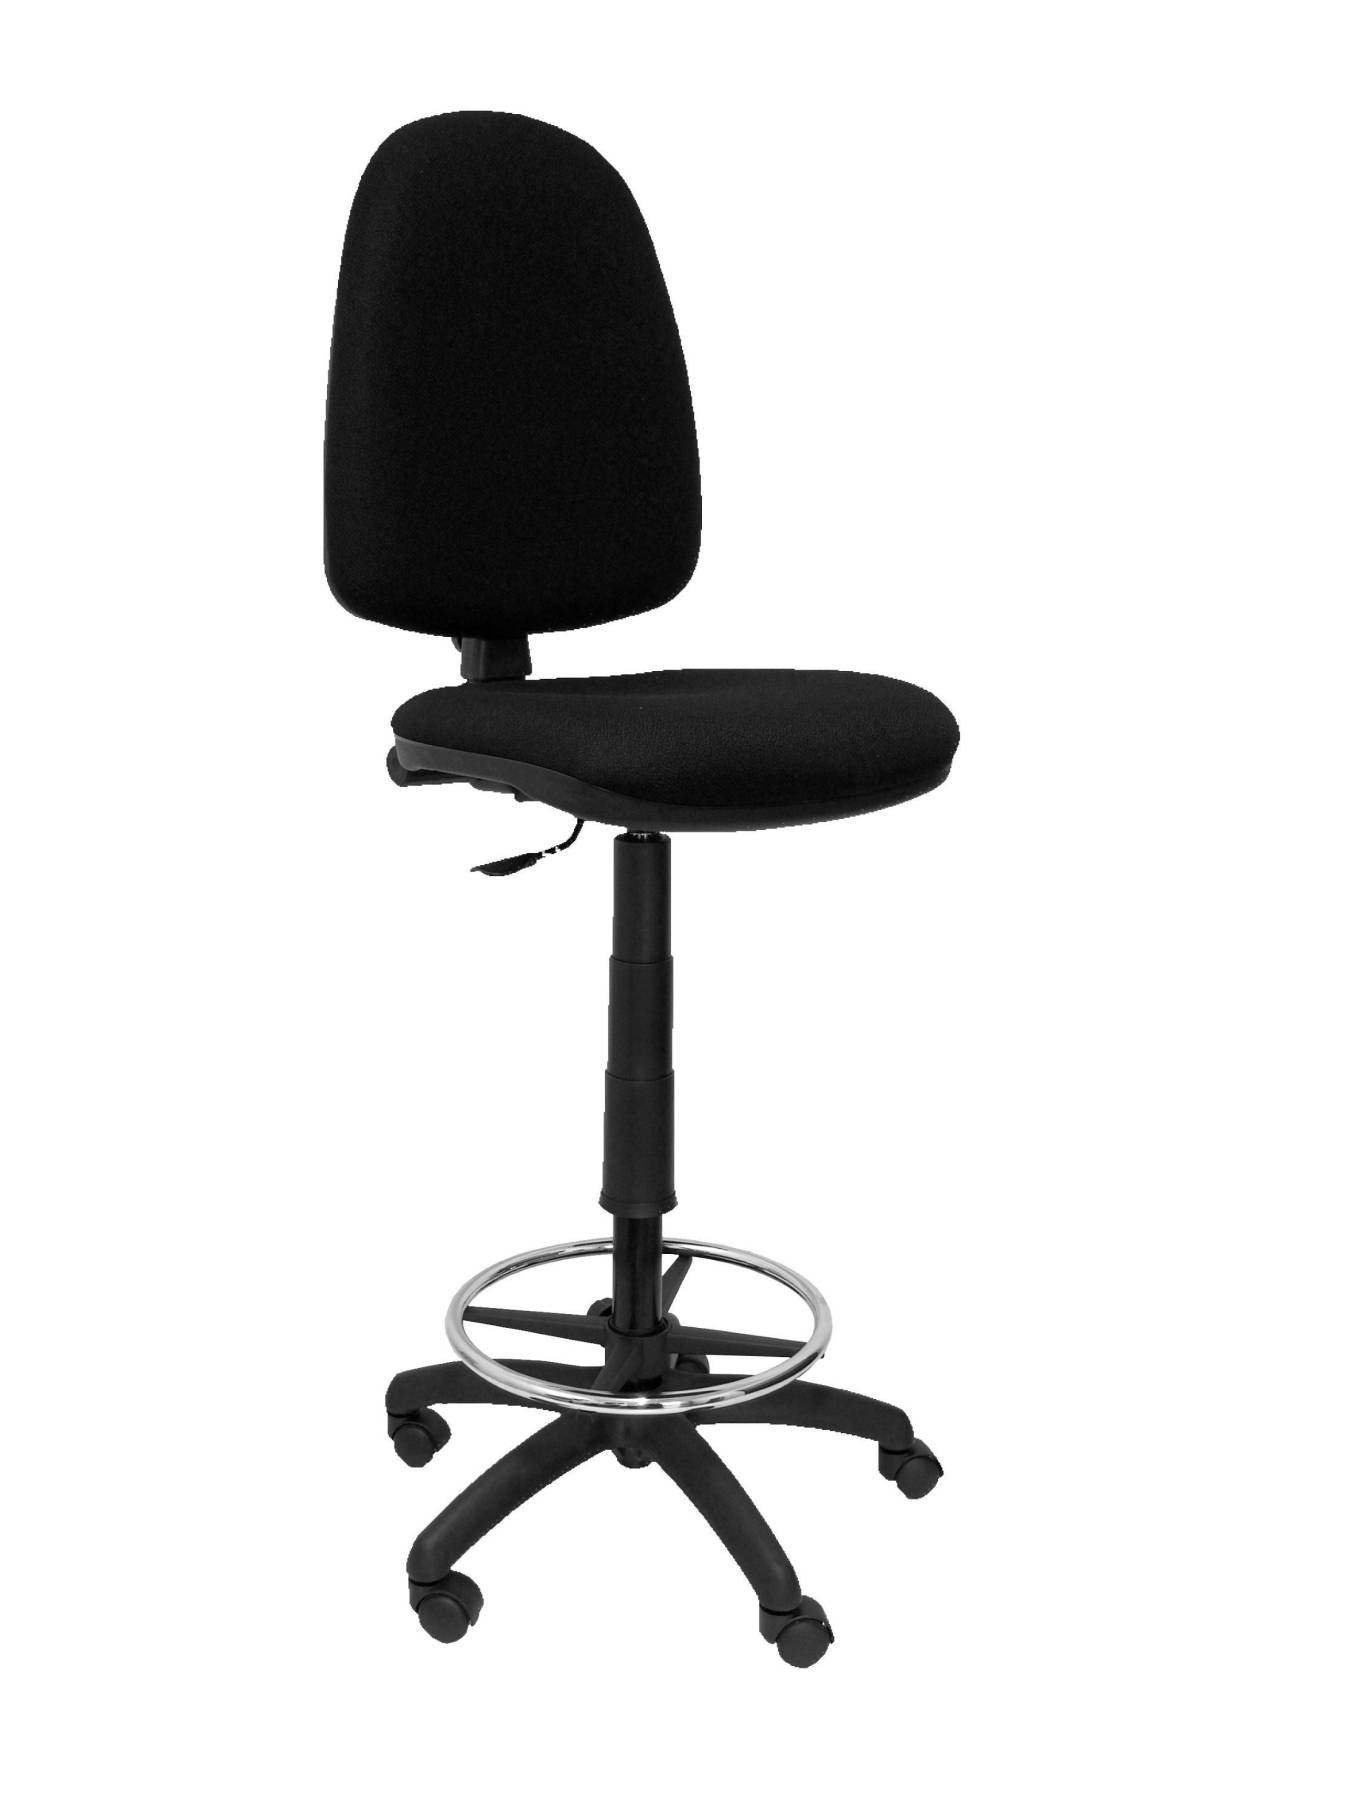 Stool Ergonomic With Permanent Contact's House Mechanism, Dimmable In High Altitude And Hoop Foot Pegs Up Seat And Backstop Tap